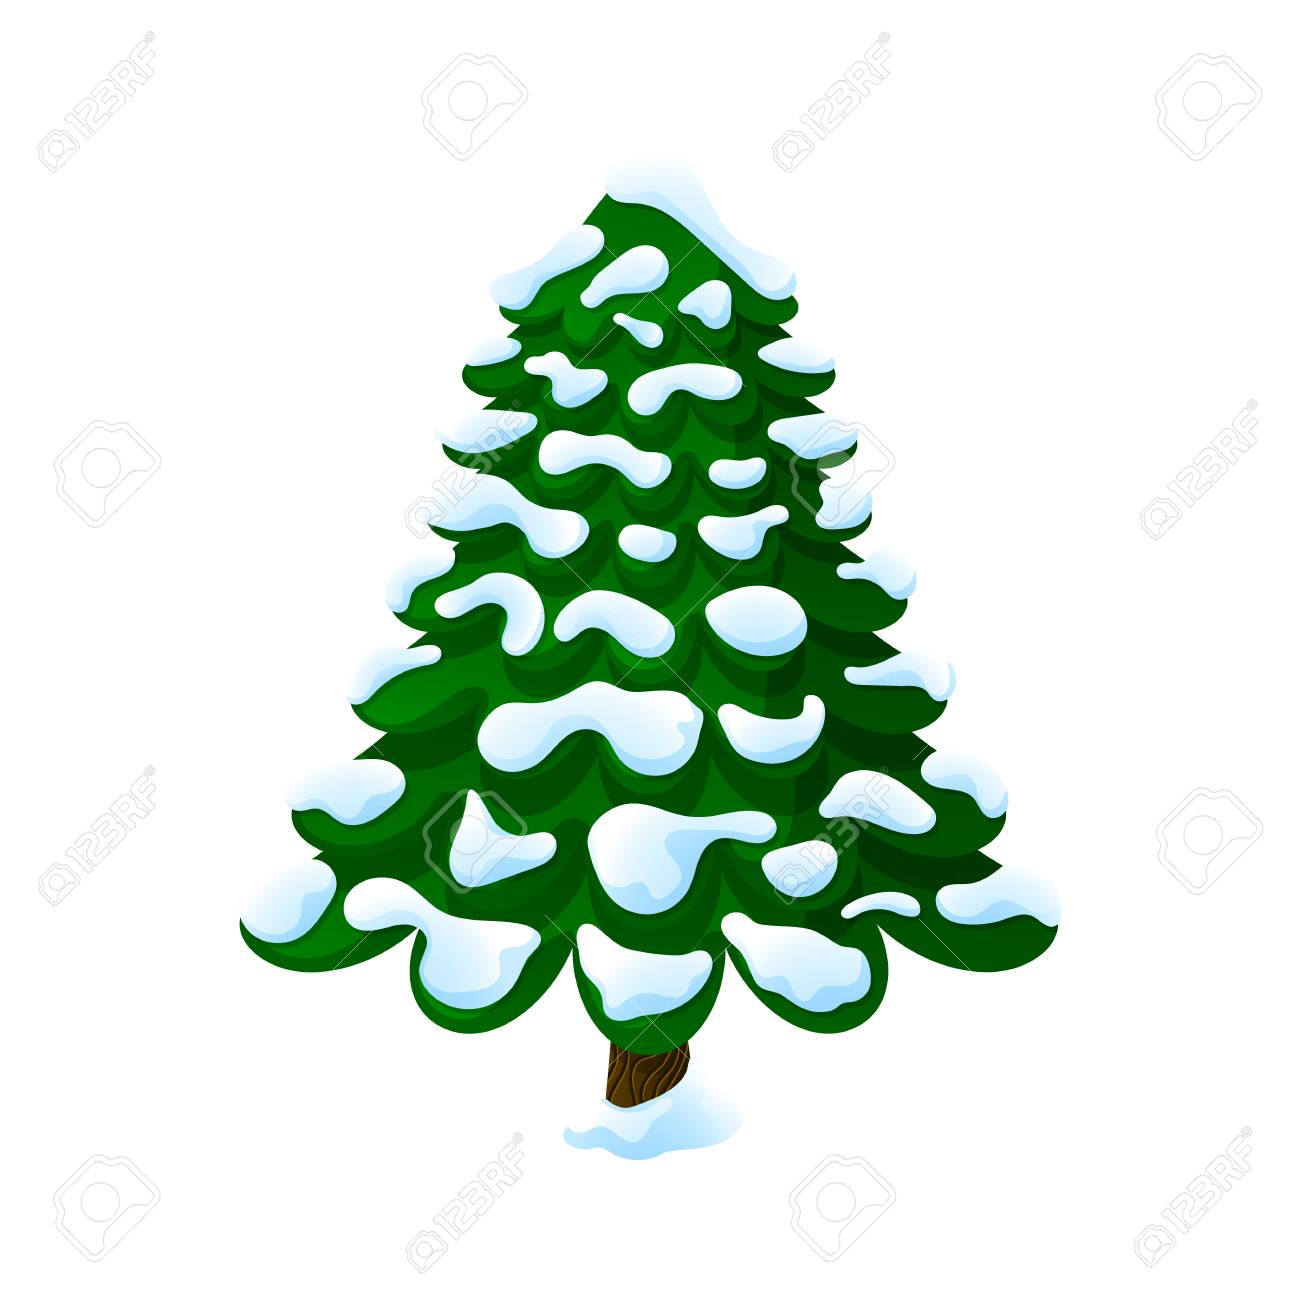 Christmas Tree In The Snow On A White Background Cartoon Vector Royalty Free Cliparts Vectors And Stock Illustration Image 109086566 Browse our christmas tree cartoons images, graphics, and designs from +79.322 free vectors graphics. christmas tree in the snow on a white background cartoon vector